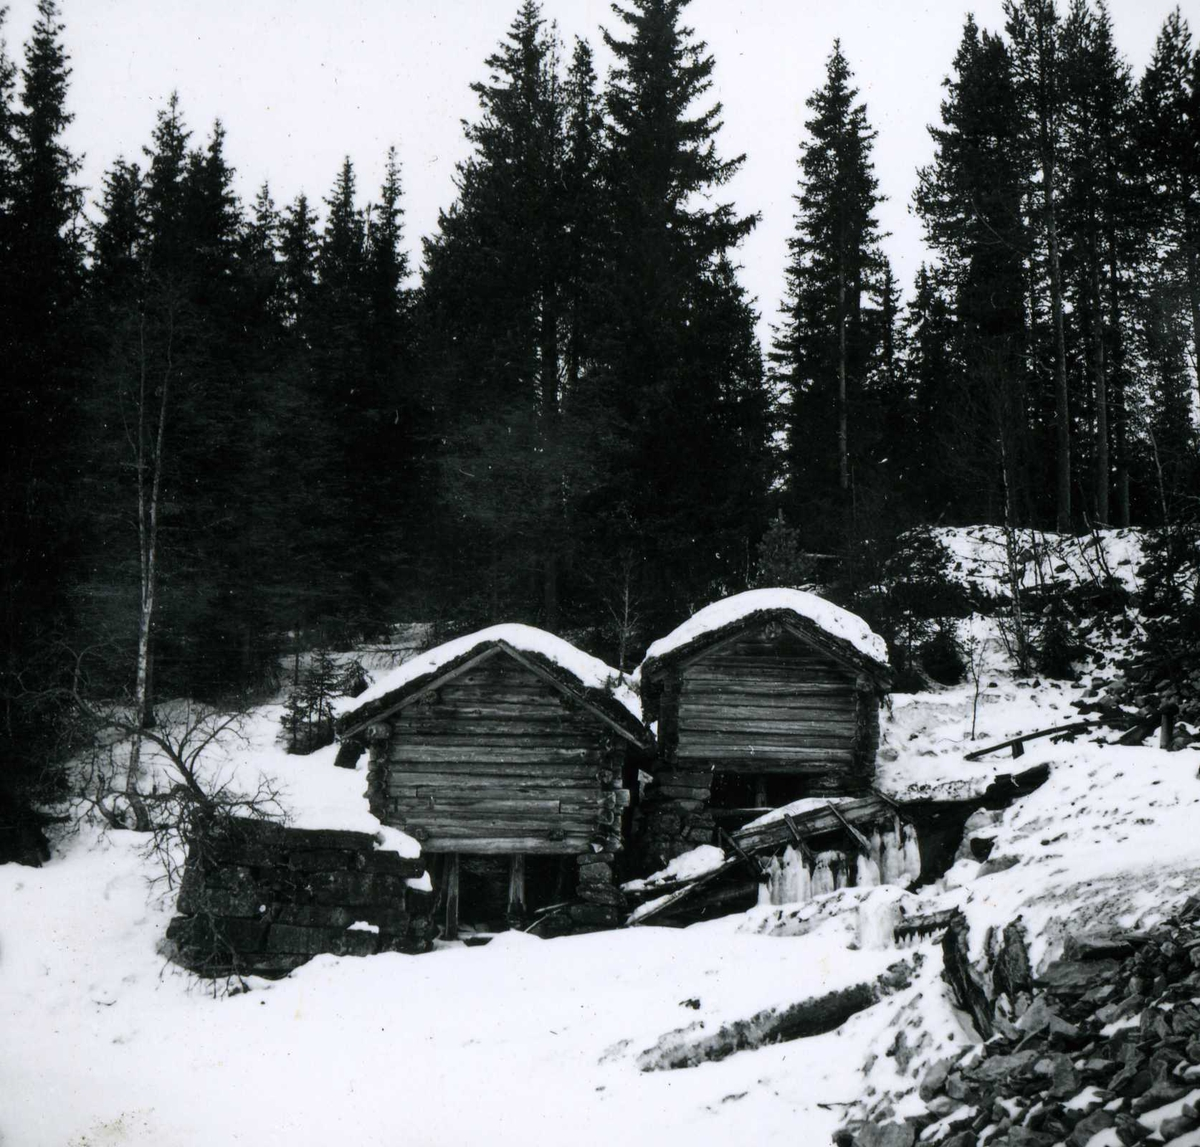 Kolosdam Totak 6, Feb. 1959